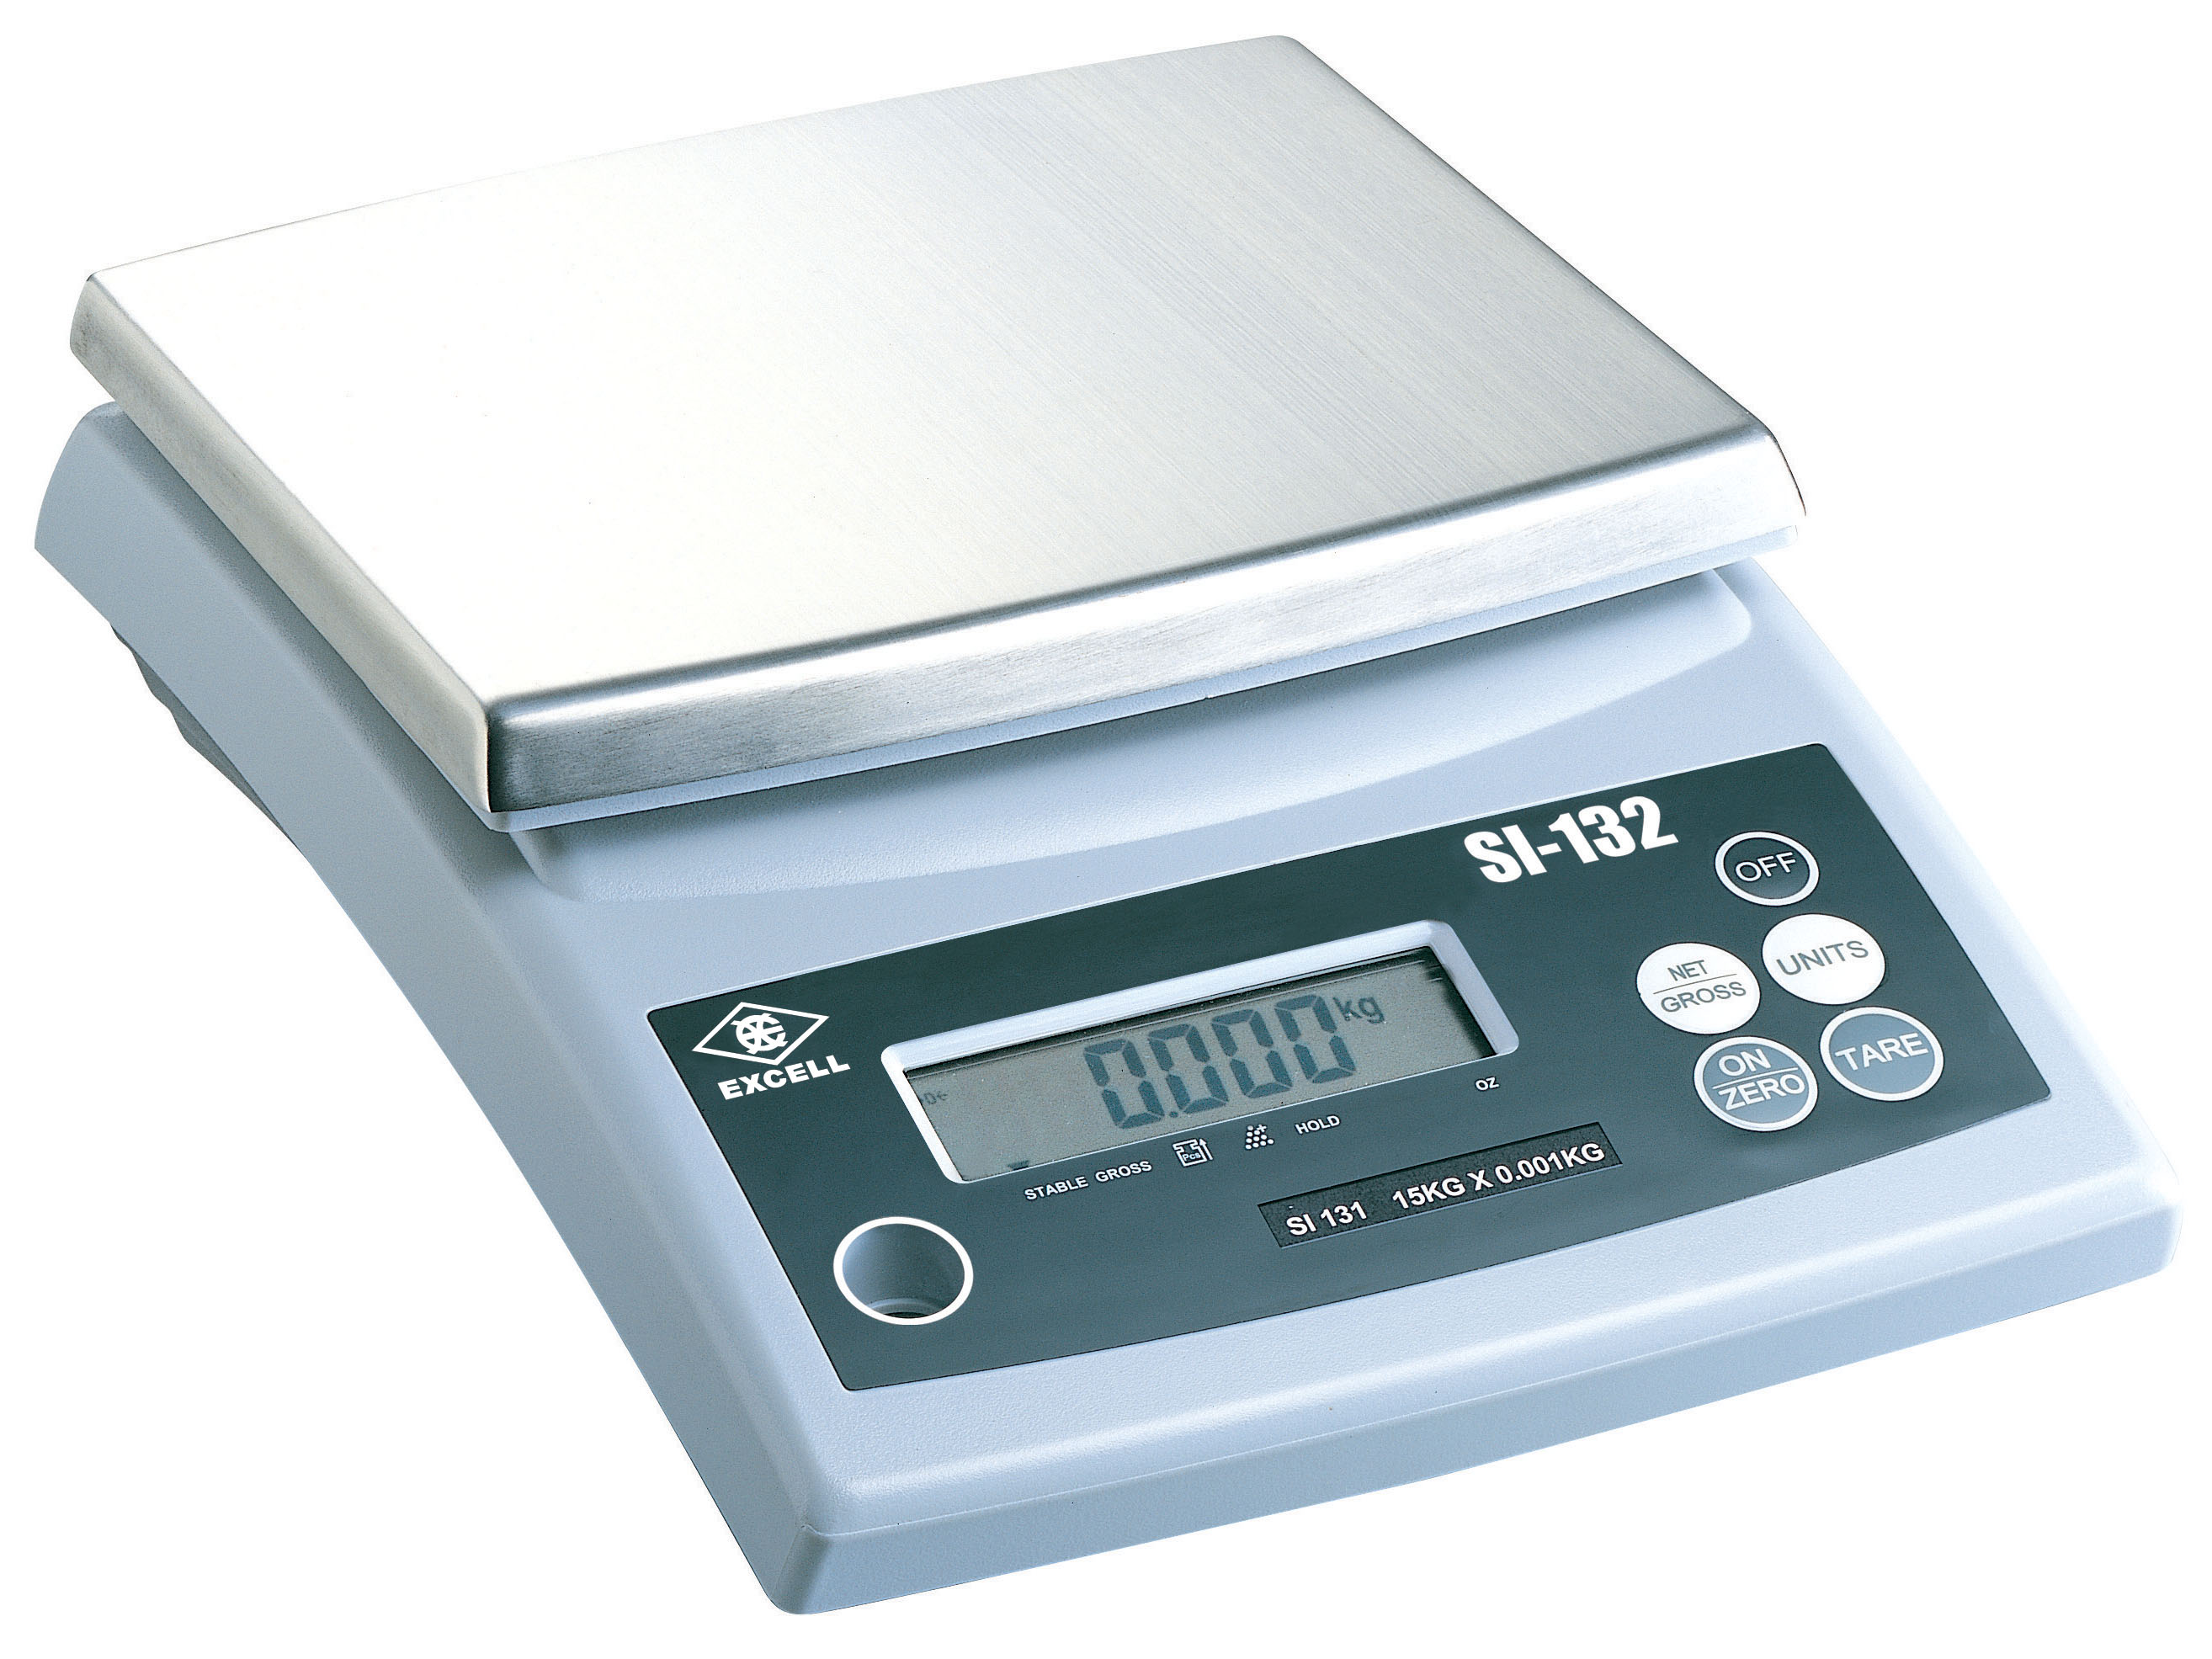 S1-132 High Resolution Weighing Scale